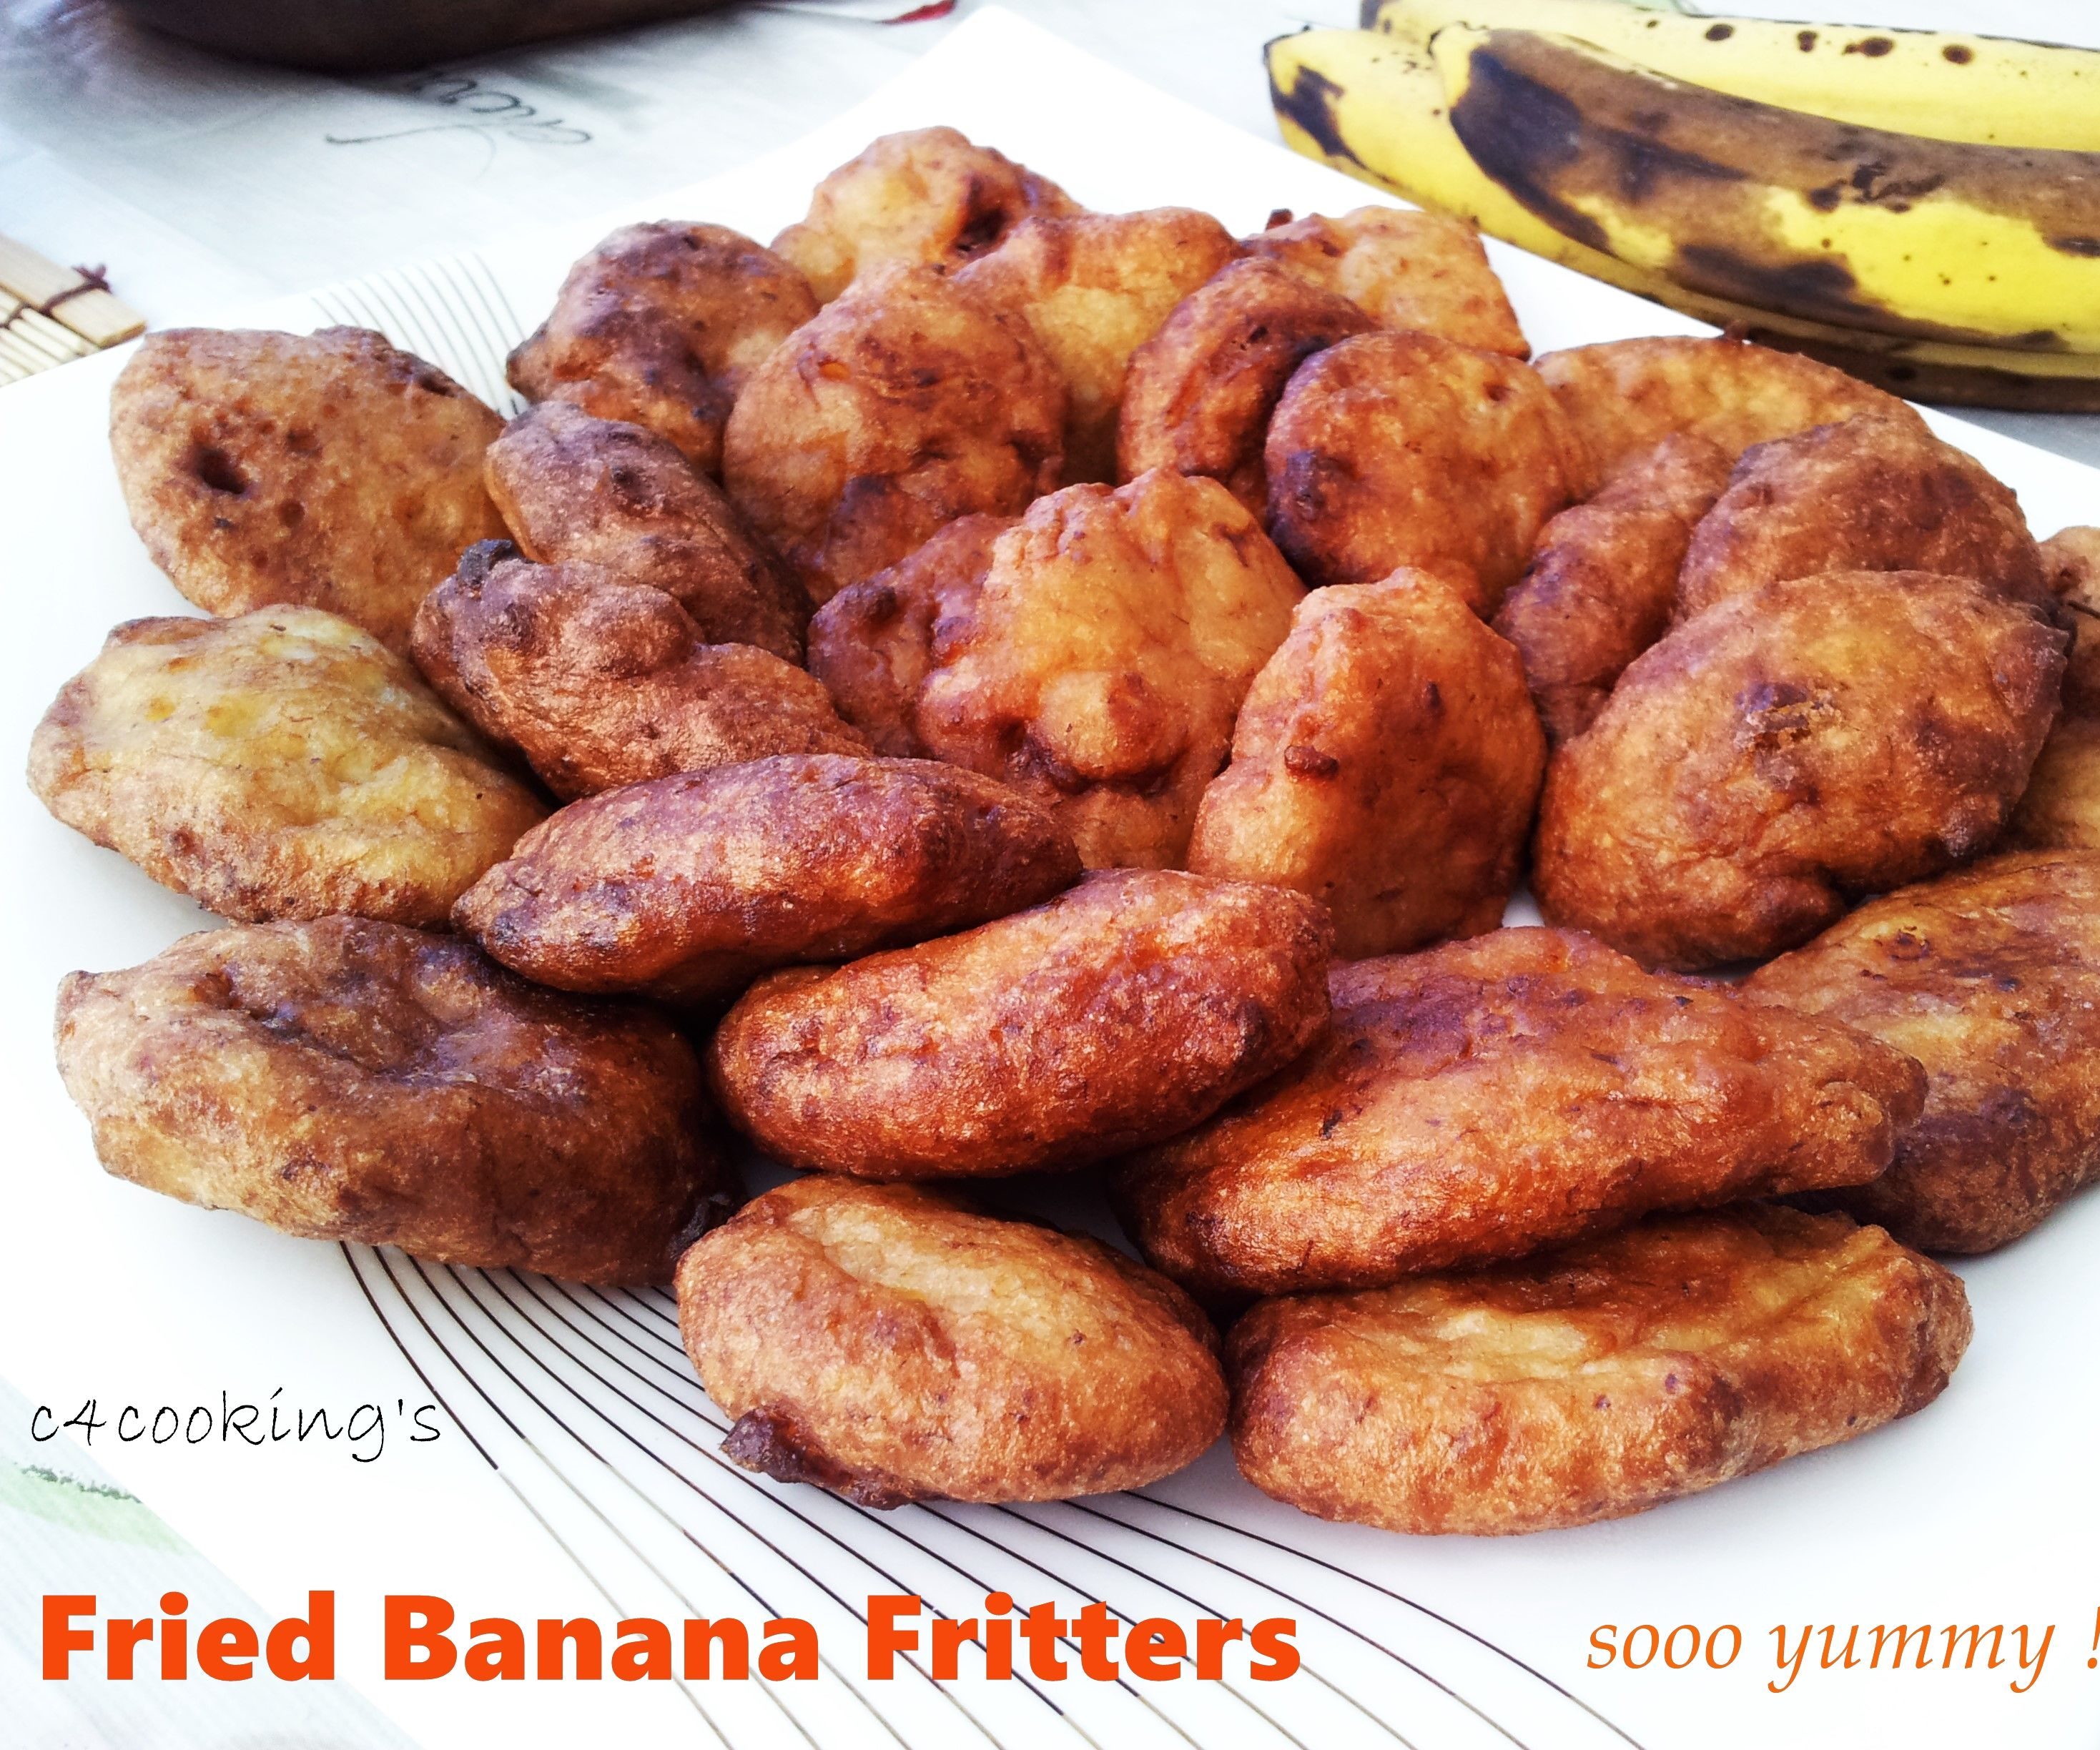 Fried Banana Fritters - Tasty Evening Snack !